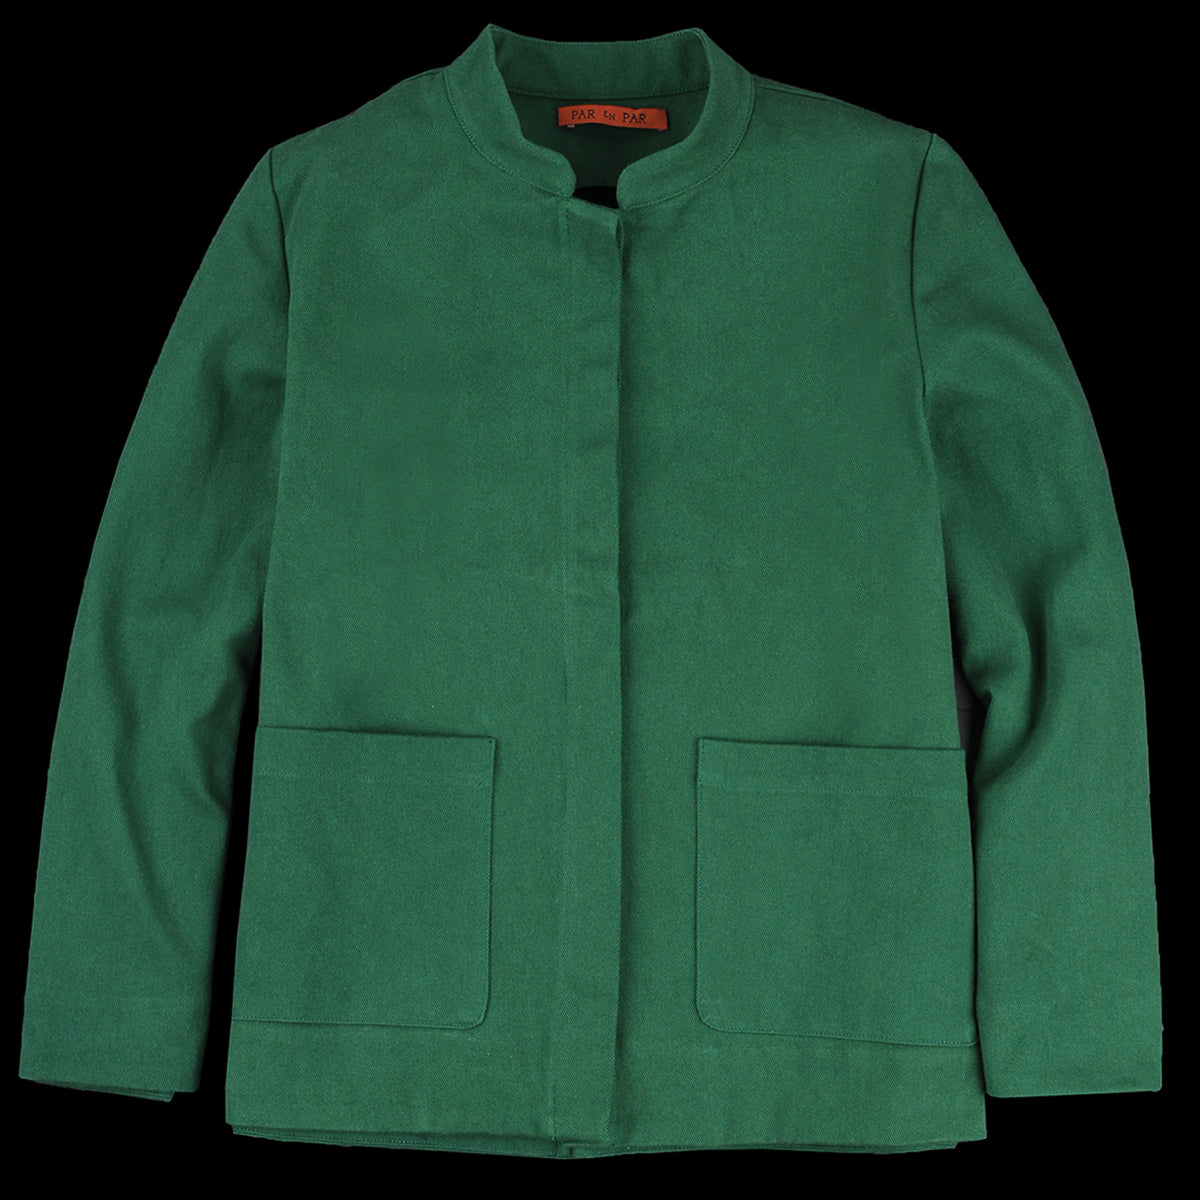 44d28623468 The Diplomat Jacket in Evergreen Twill